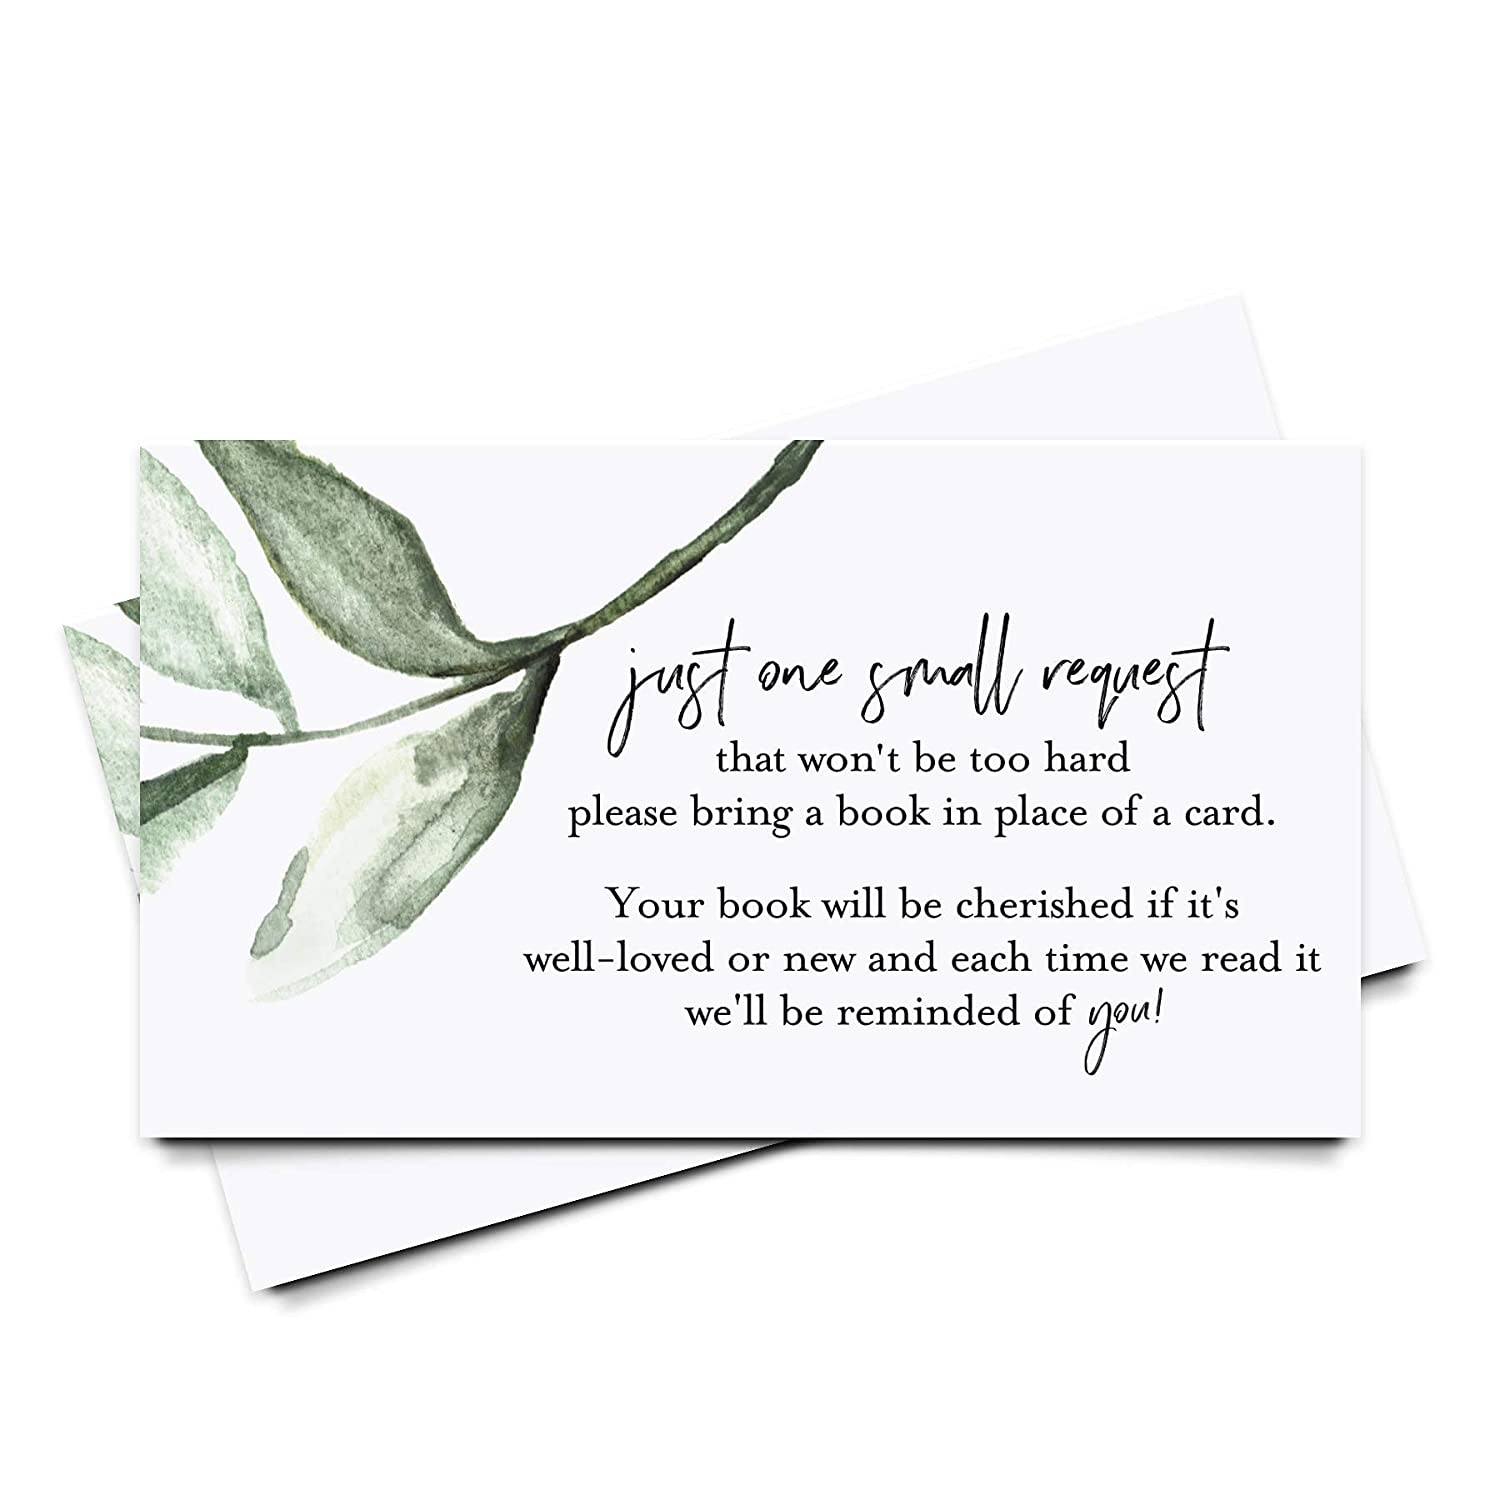 Bliss Collections Book Request Cards for Baby Shower for Girls, Pack of 50 Greenery Themed Books for Baby Cards to Match Your Diaper Raffle Cards, 2 x 3.5 Heavyweight Card Stock, Made in the USA